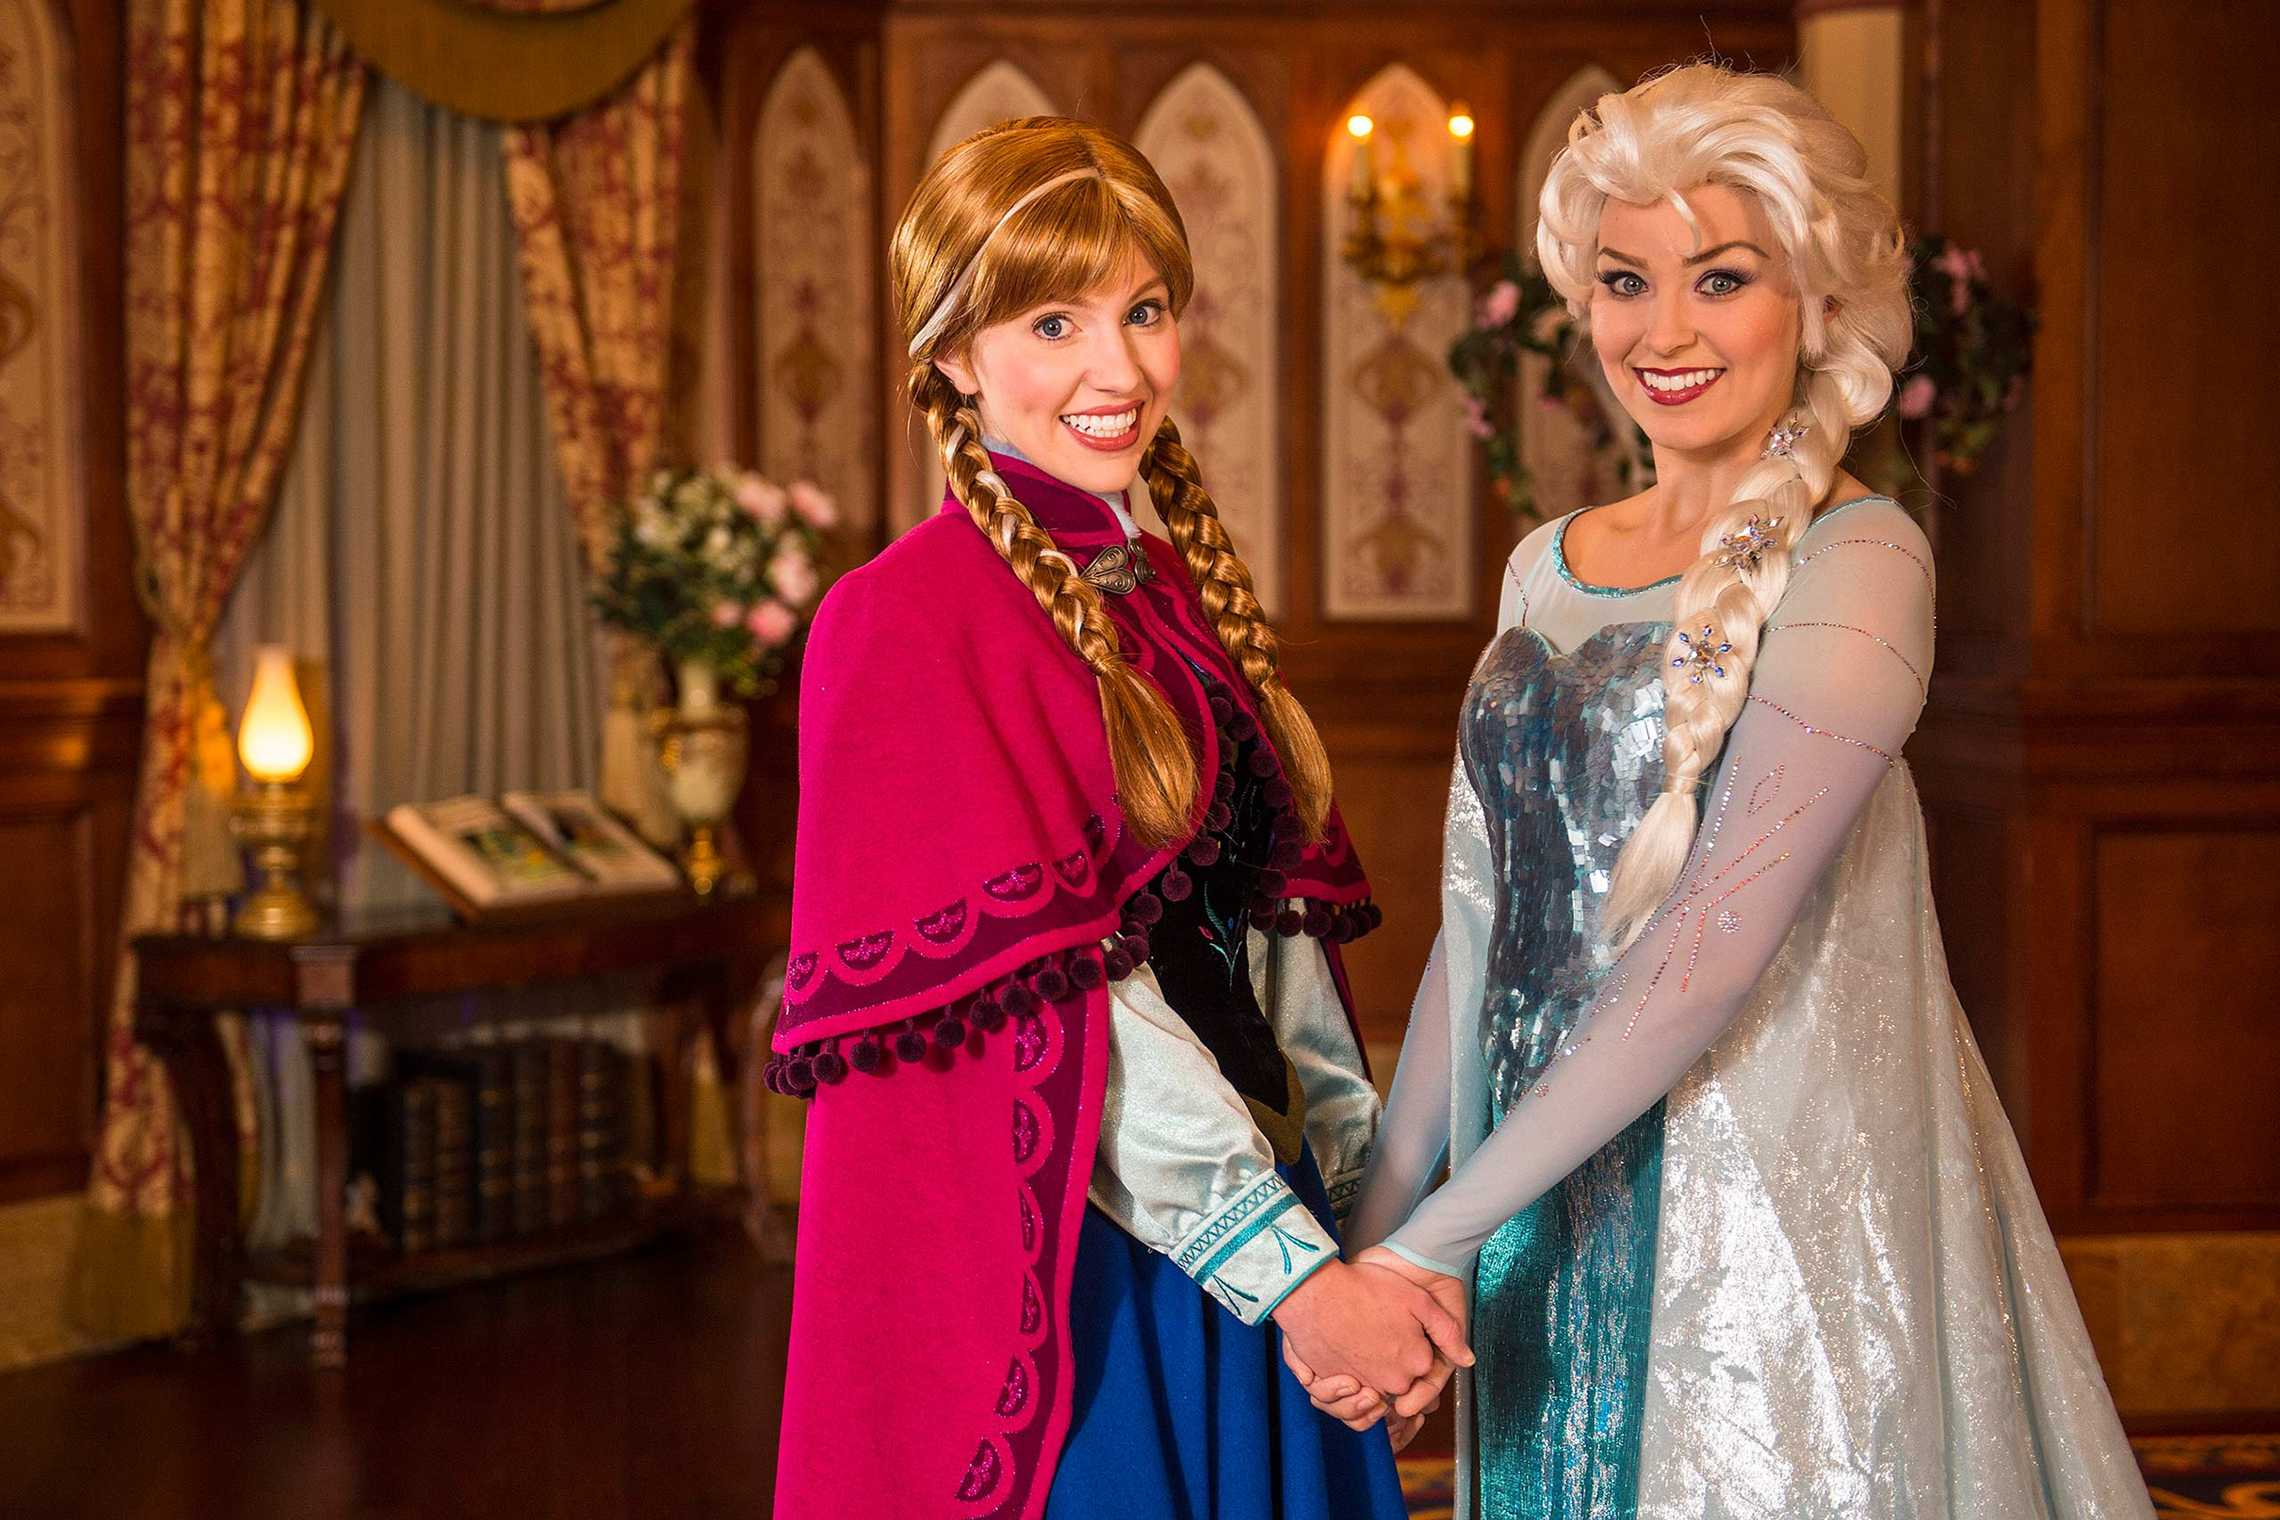 Elsa and Anna at Princess Fairytale Hall